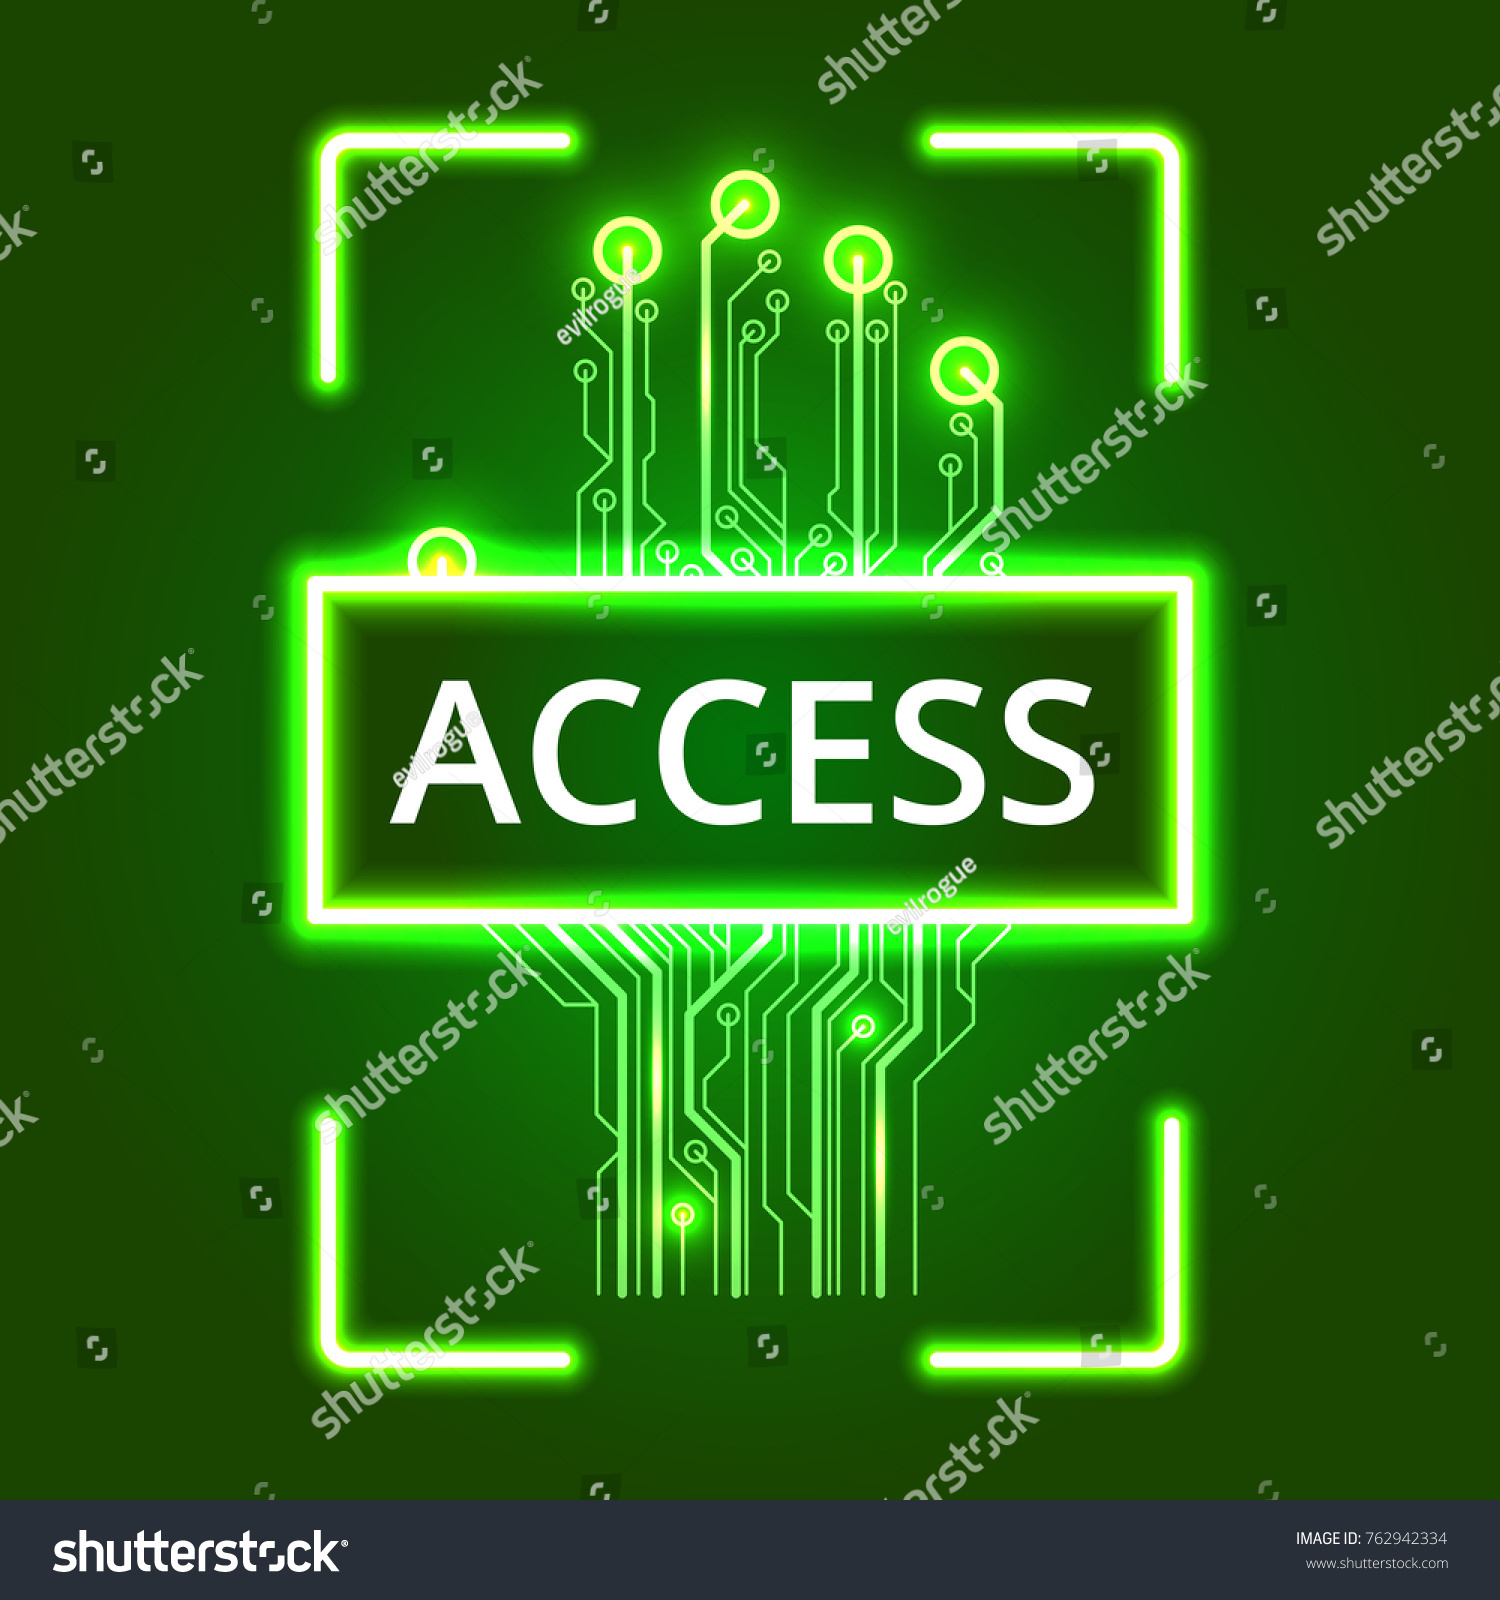 Hand Circuit Board Scanner Vector Illustration Stock Royalty Boards With Clock Hands Free Image On A Green Background